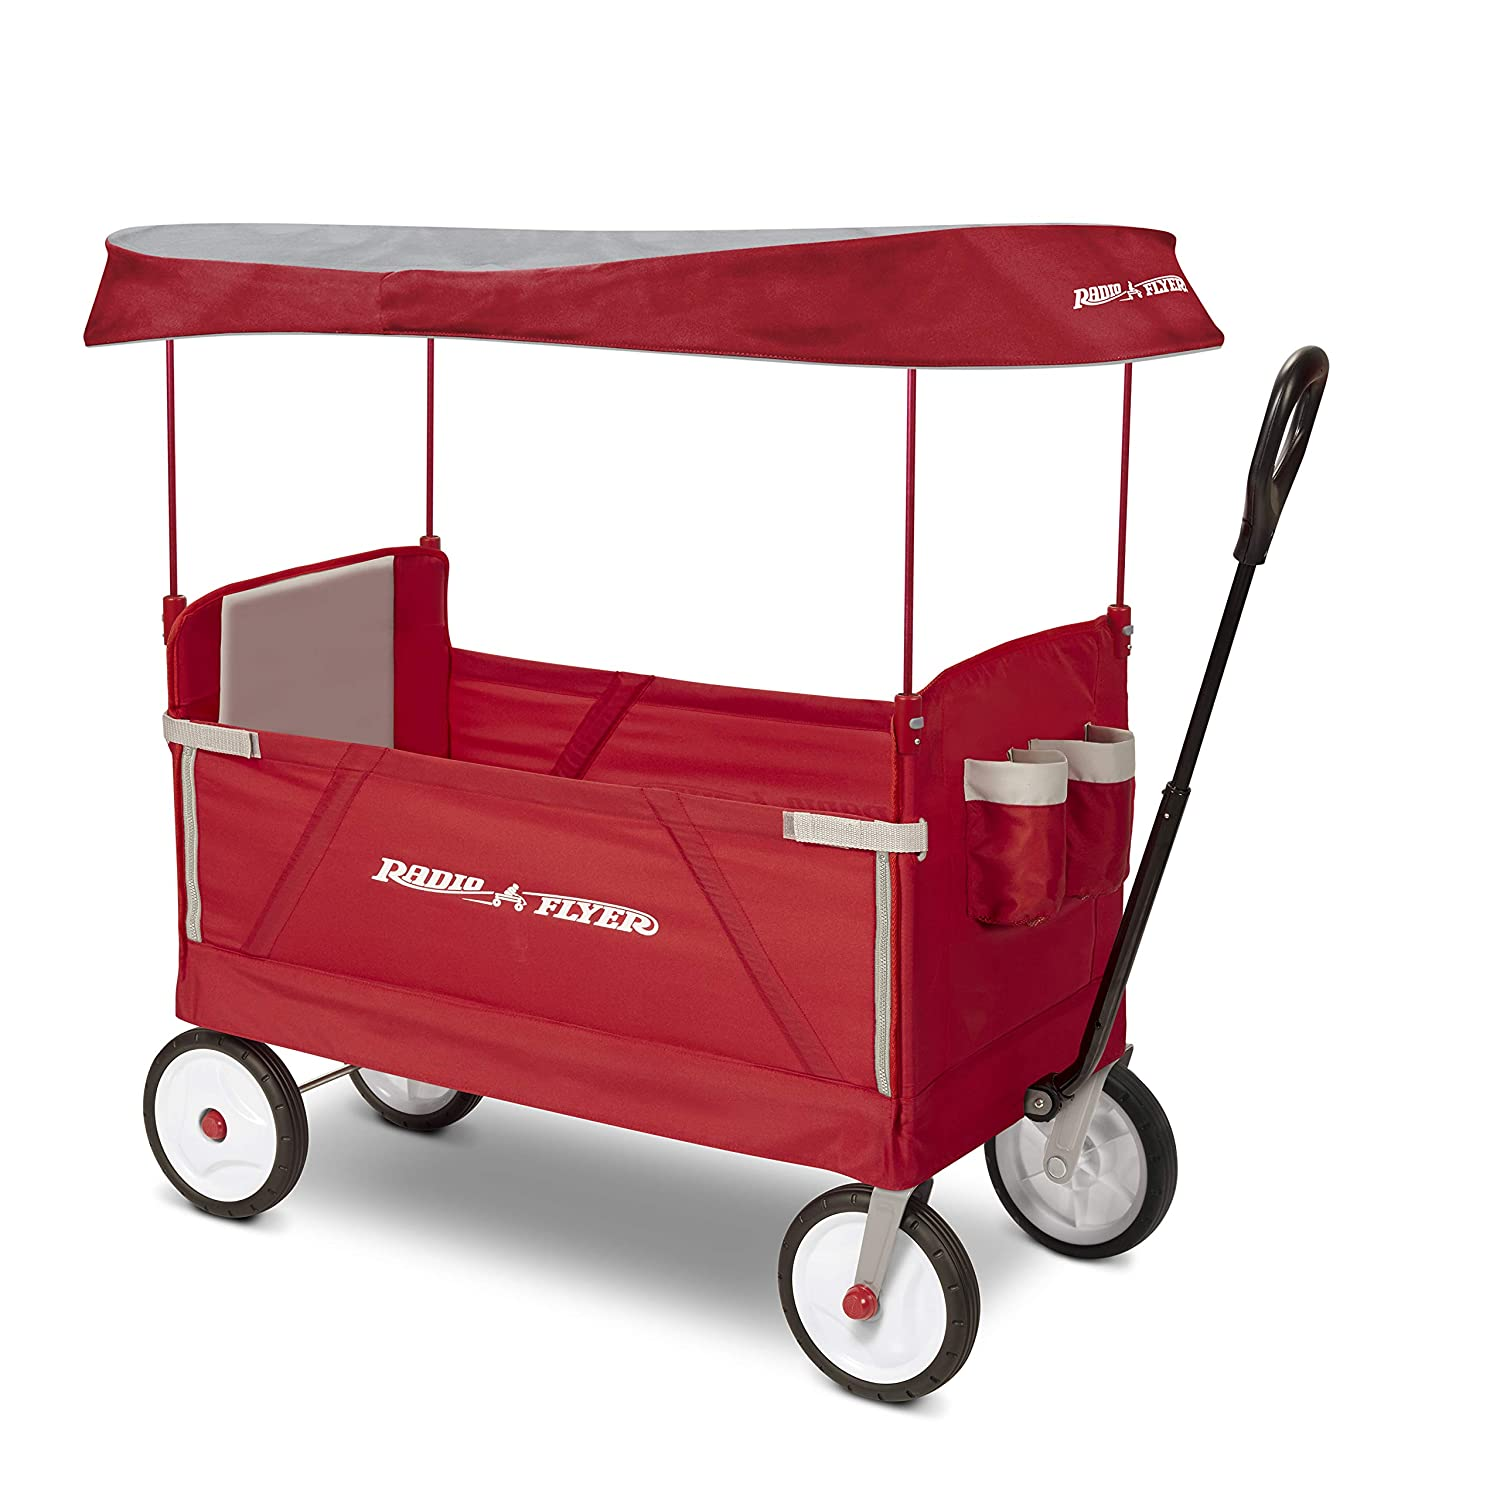 Amazoncom Radio Flyer 3 In 1 Ez Folding Wagon With Canopy For Kids